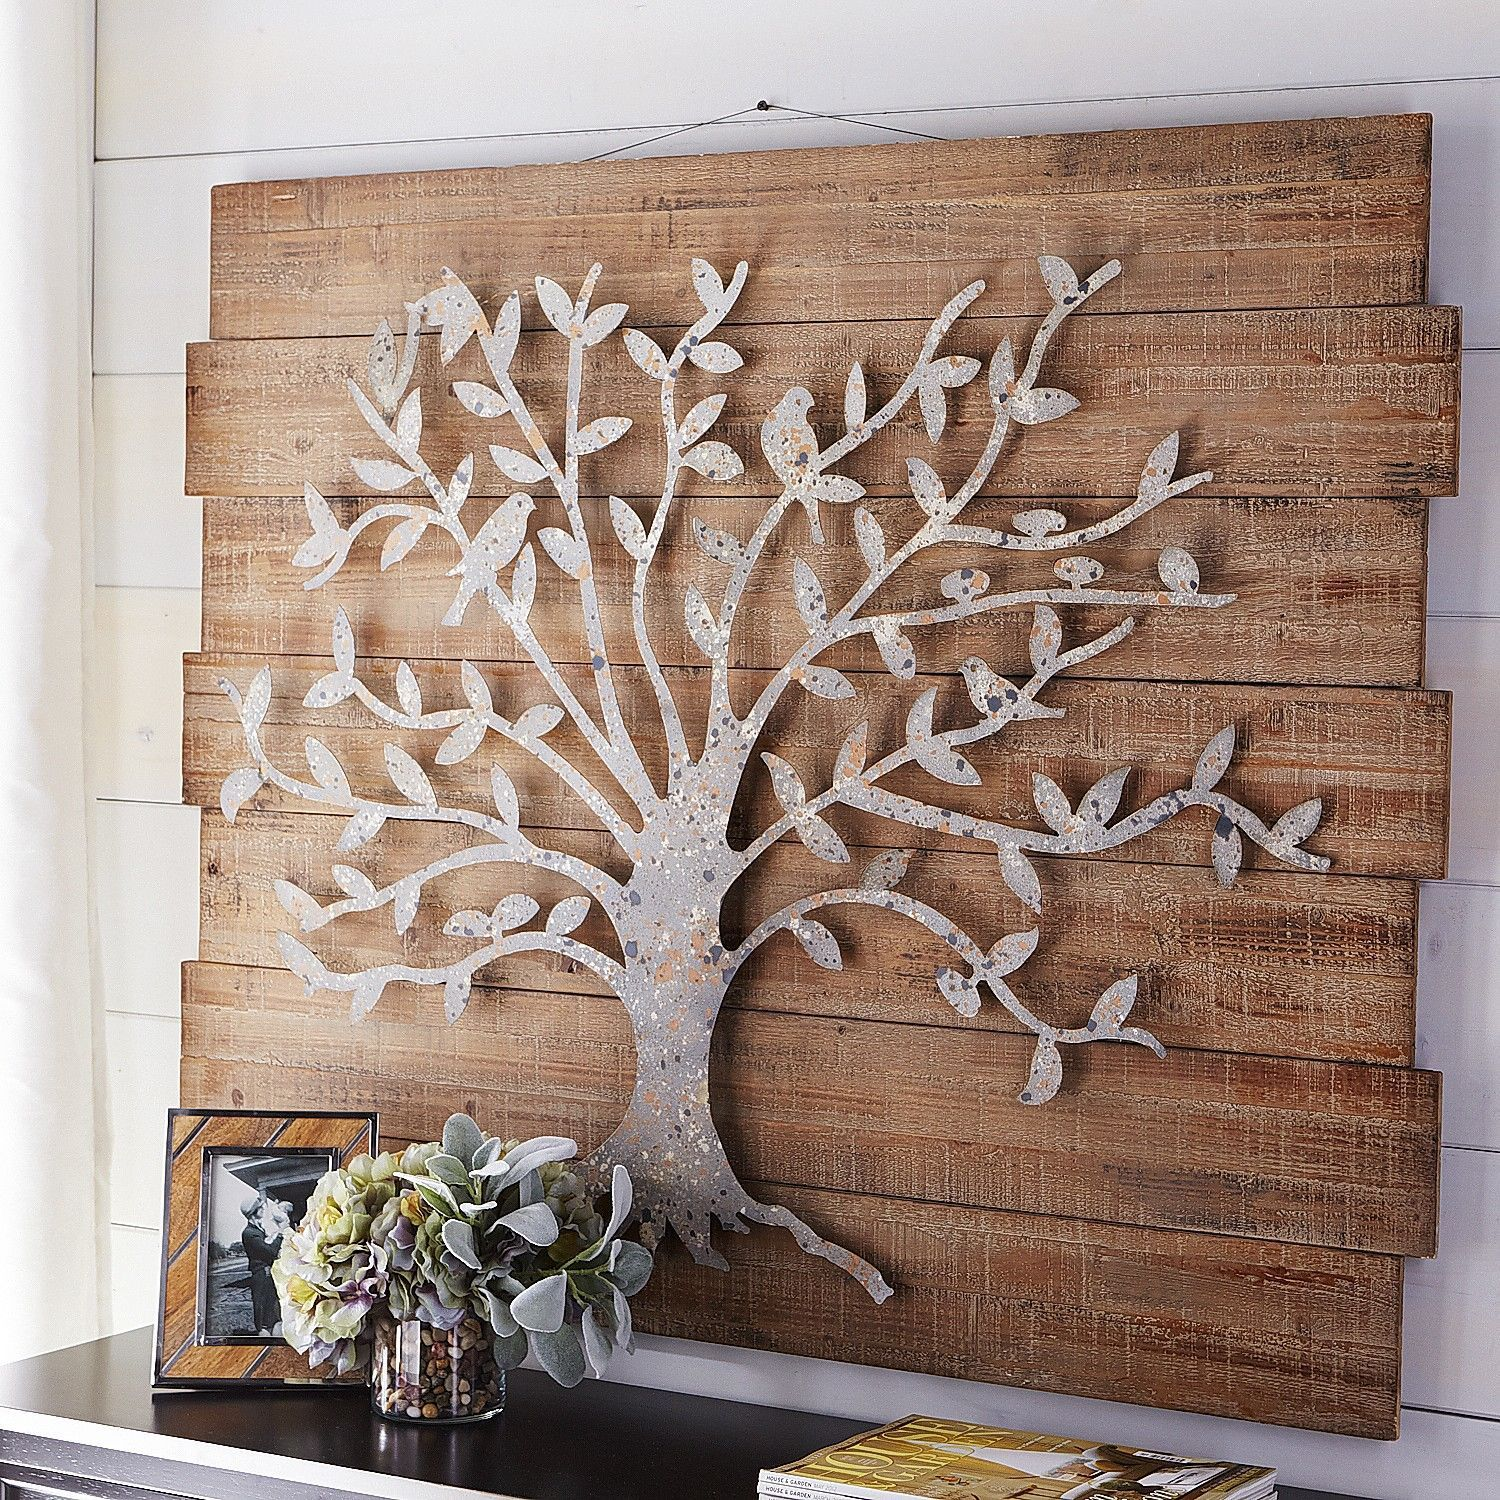 timeless tree wall decor pier 1 imports home pinterest tree wall decor tree wall and. Black Bedroom Furniture Sets. Home Design Ideas